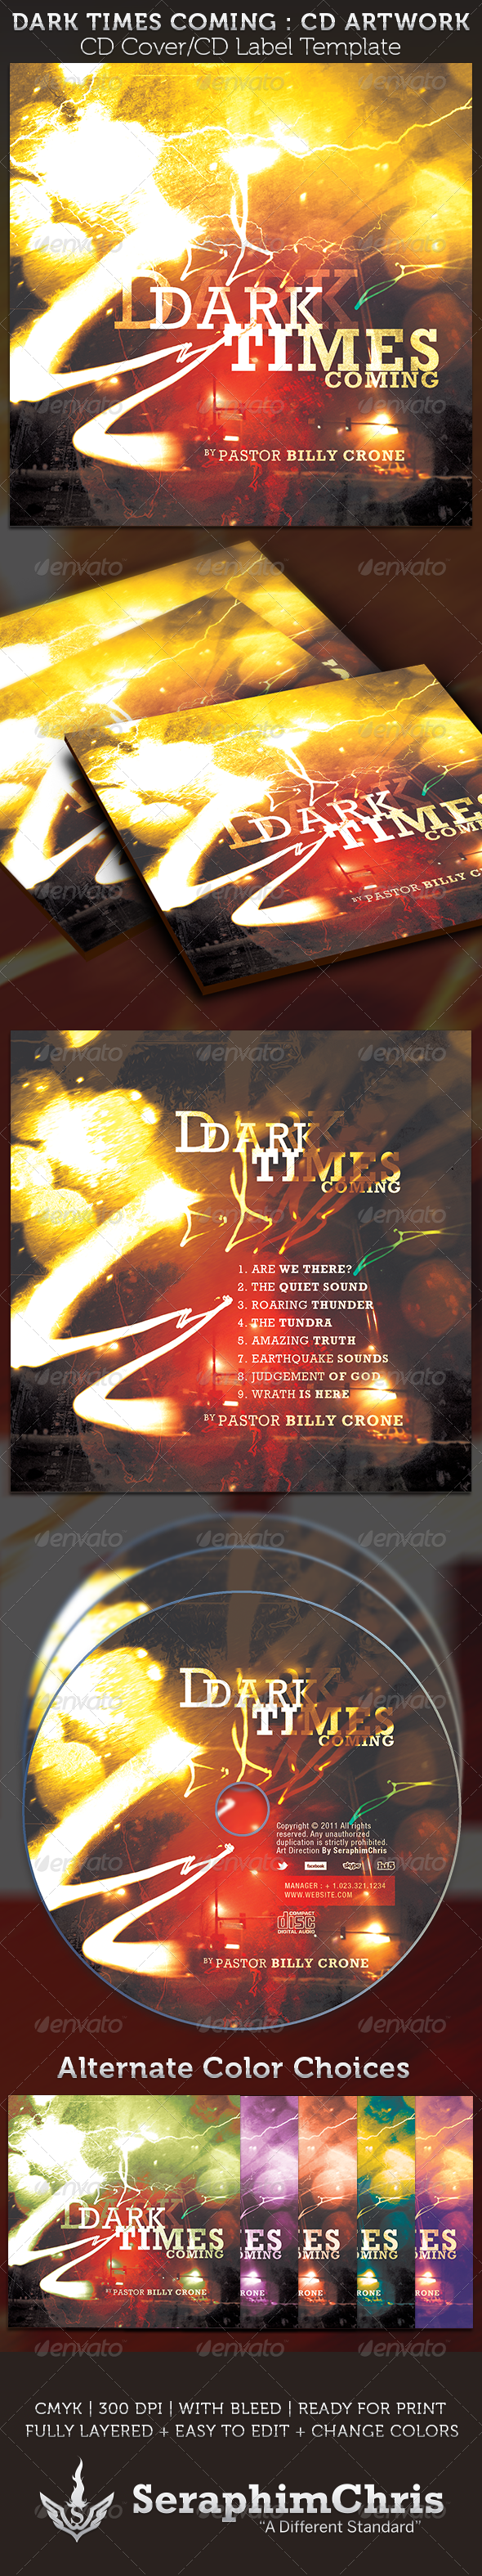 GraphicRiver Dark Times Coming CD Cover Artwork Template 3826345